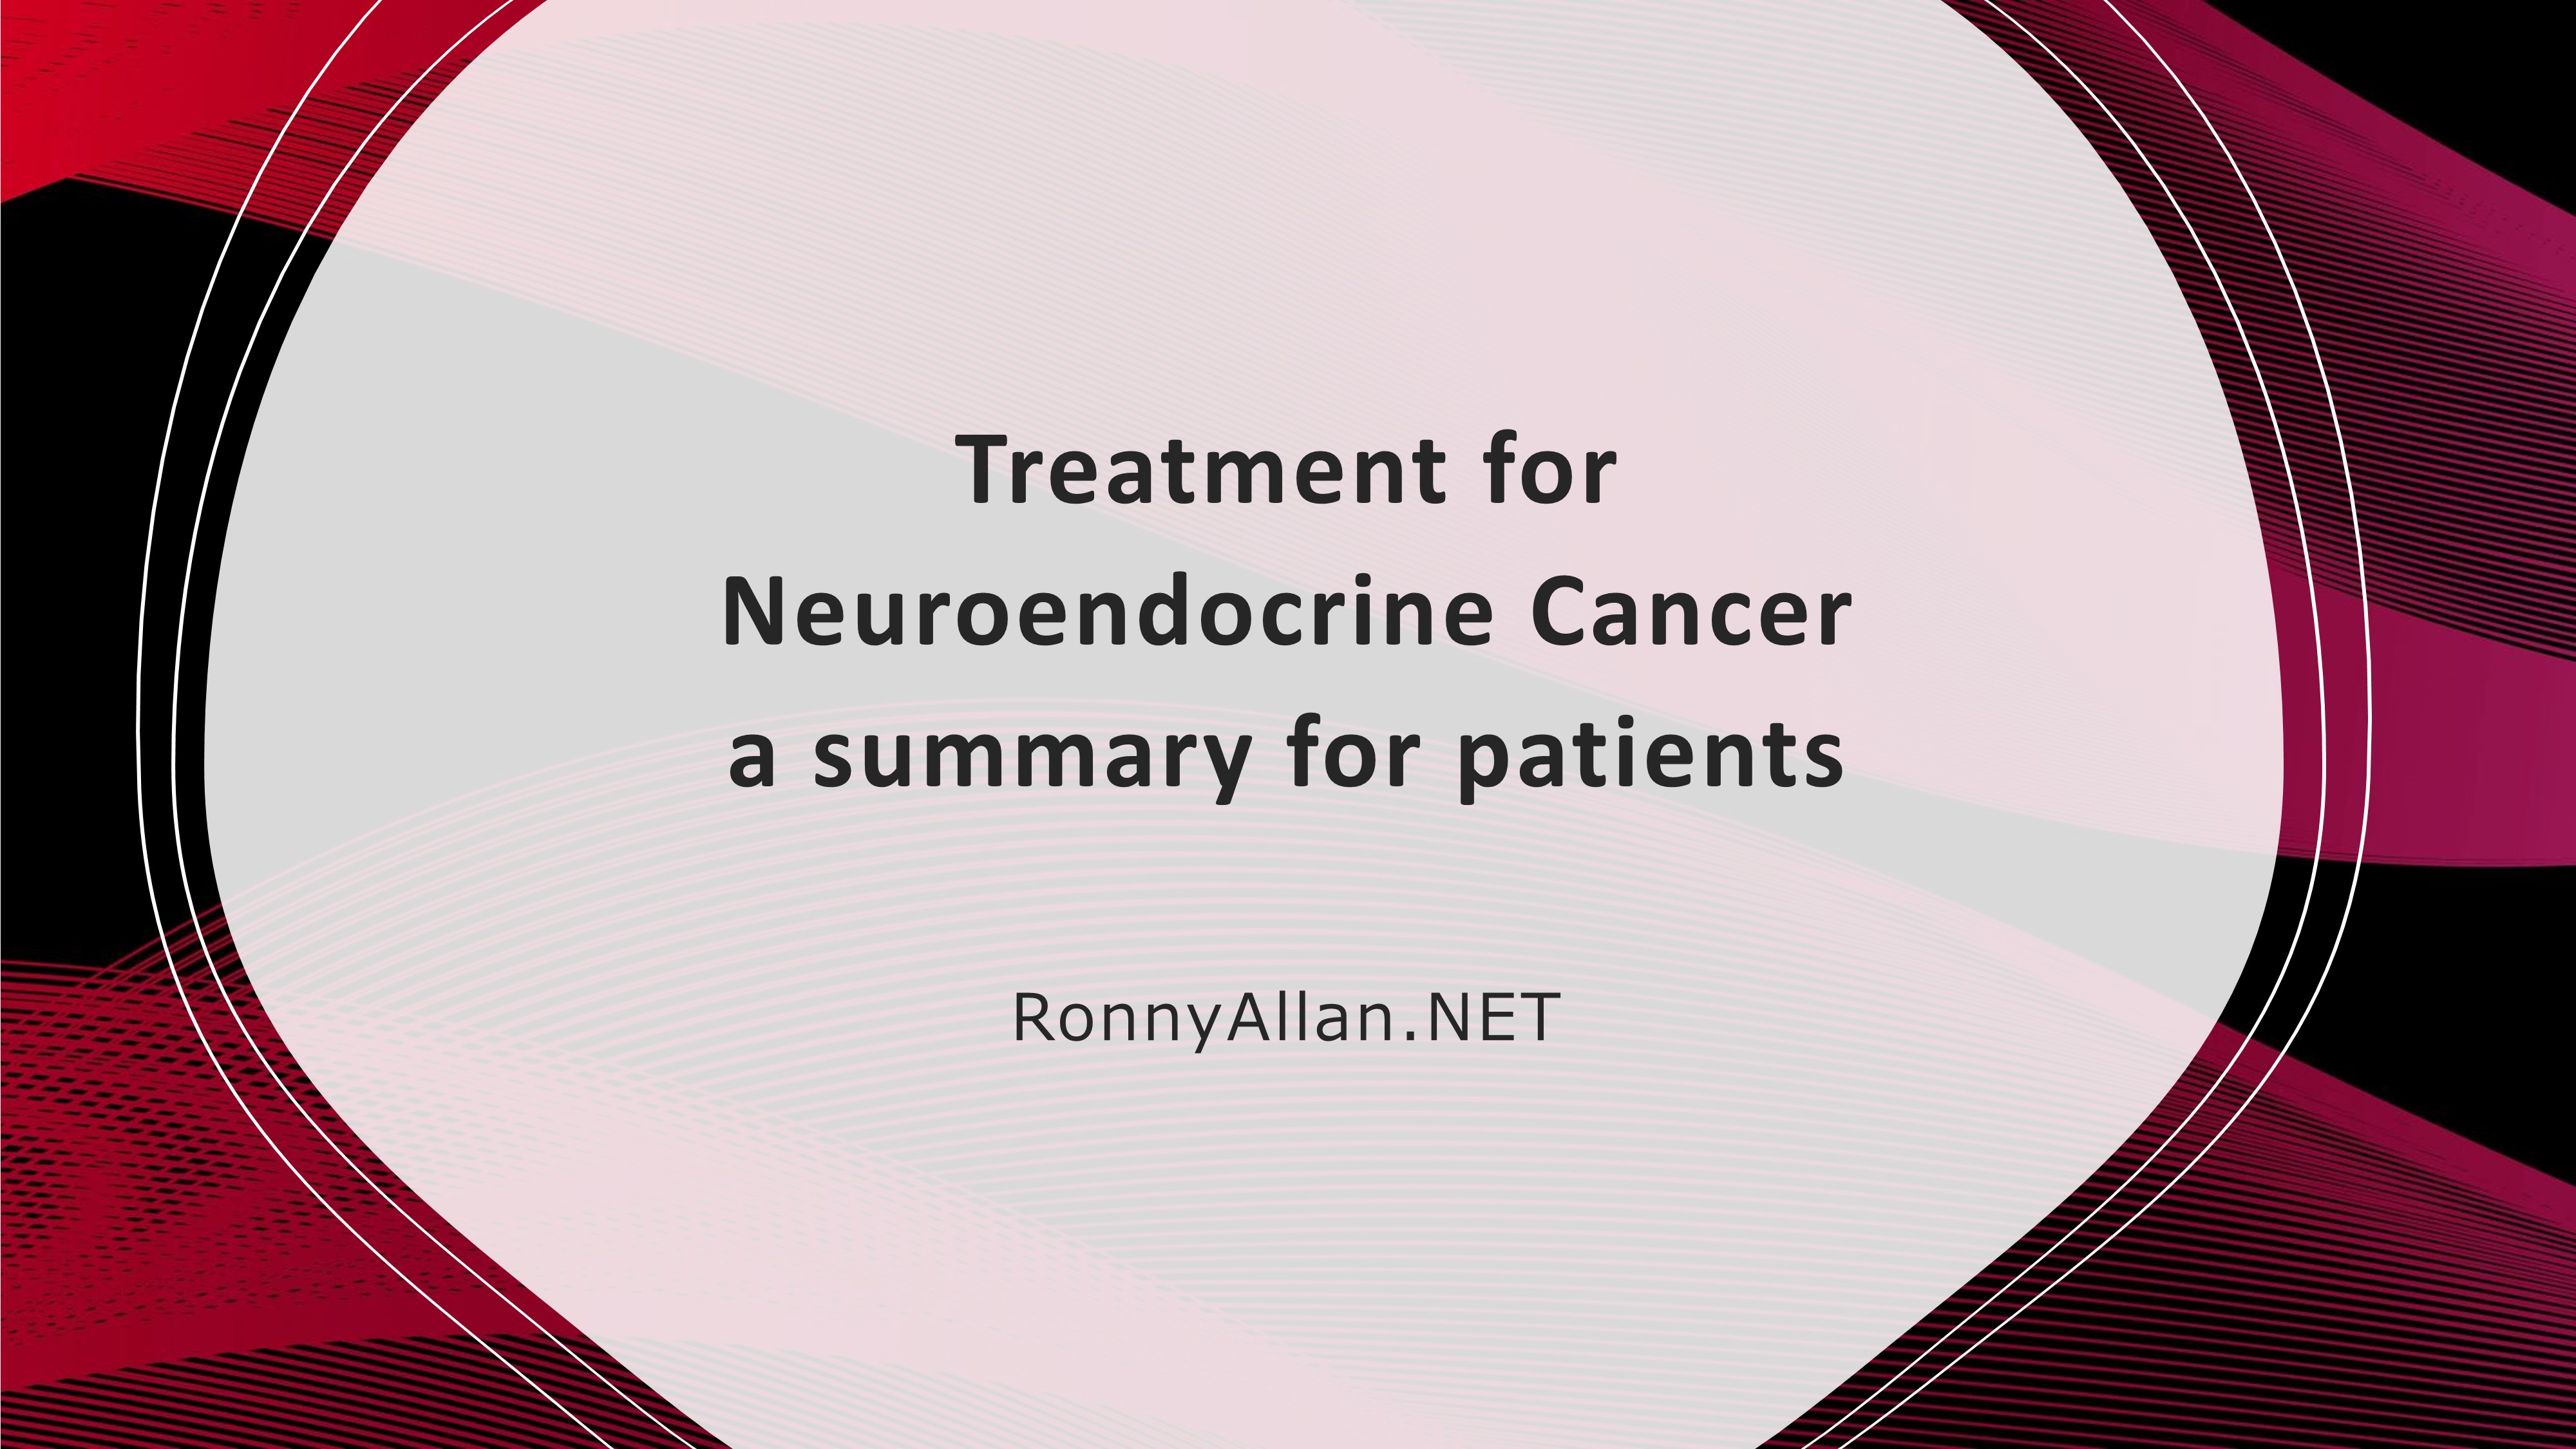 Treatment for Neuroendocrine Cancer – a summary for patients